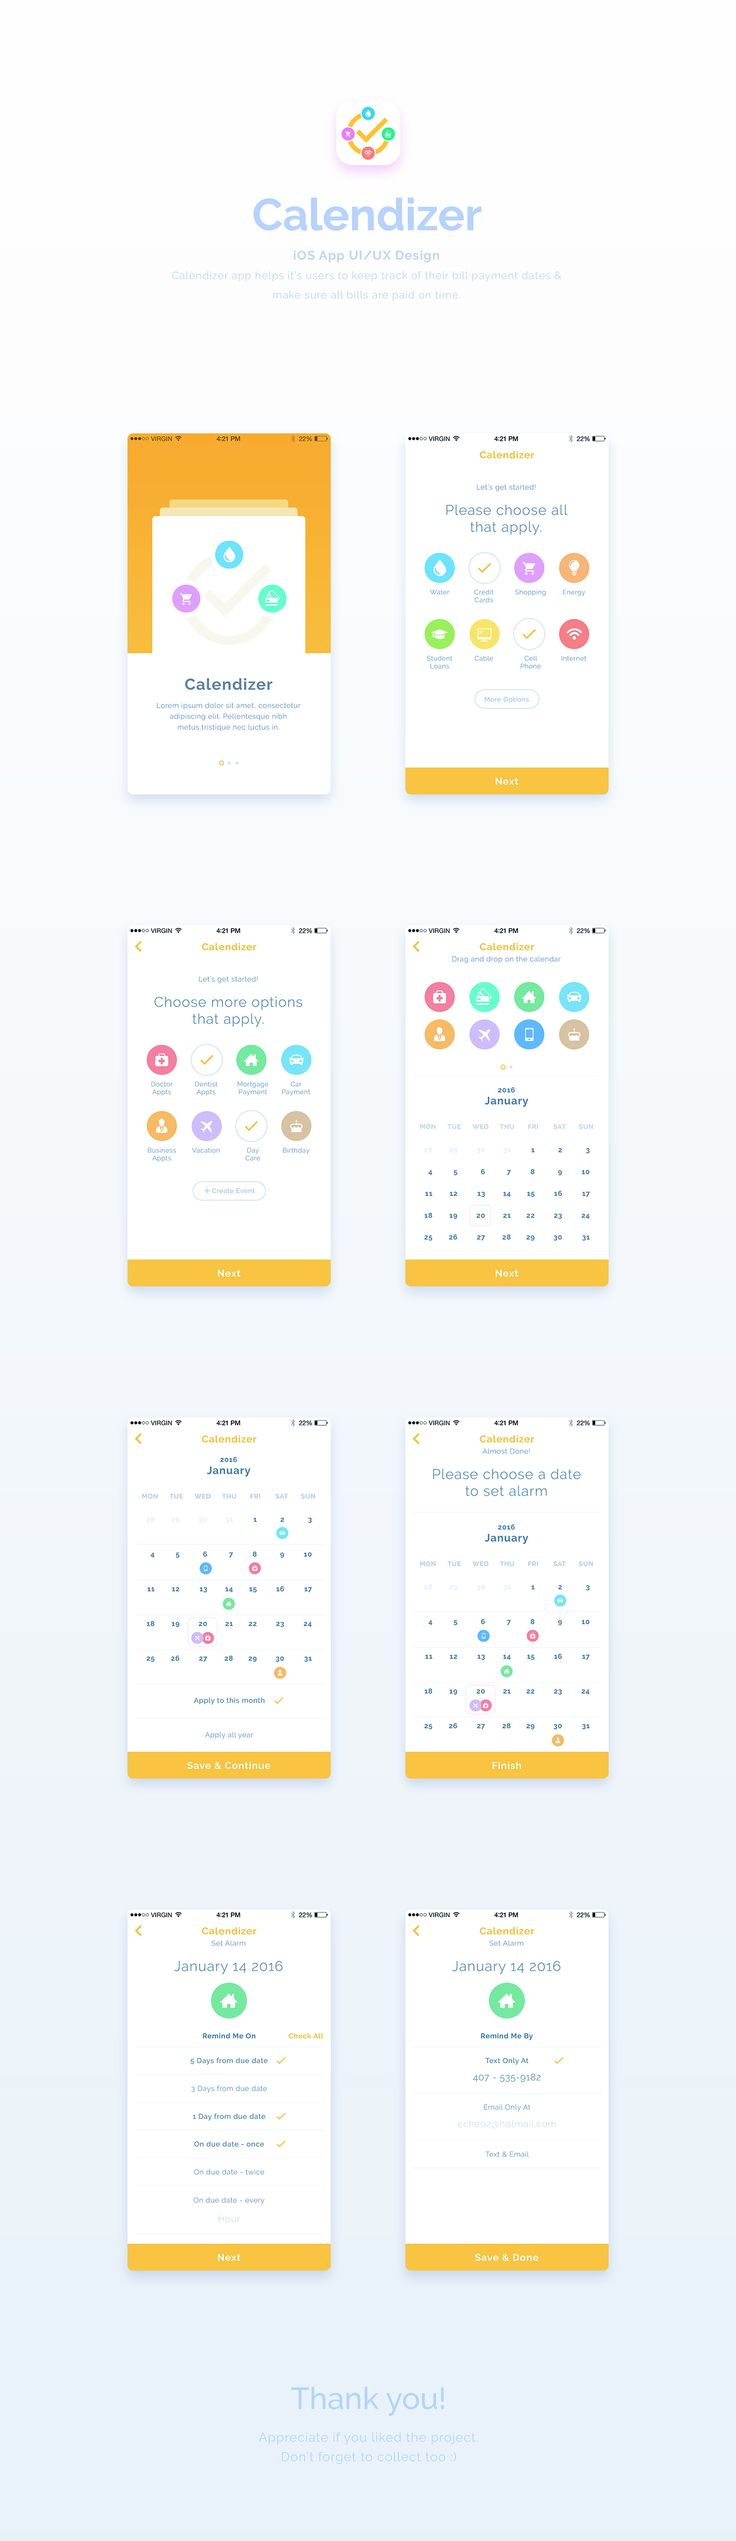 Calendizer | App UI / UX Design on Behance